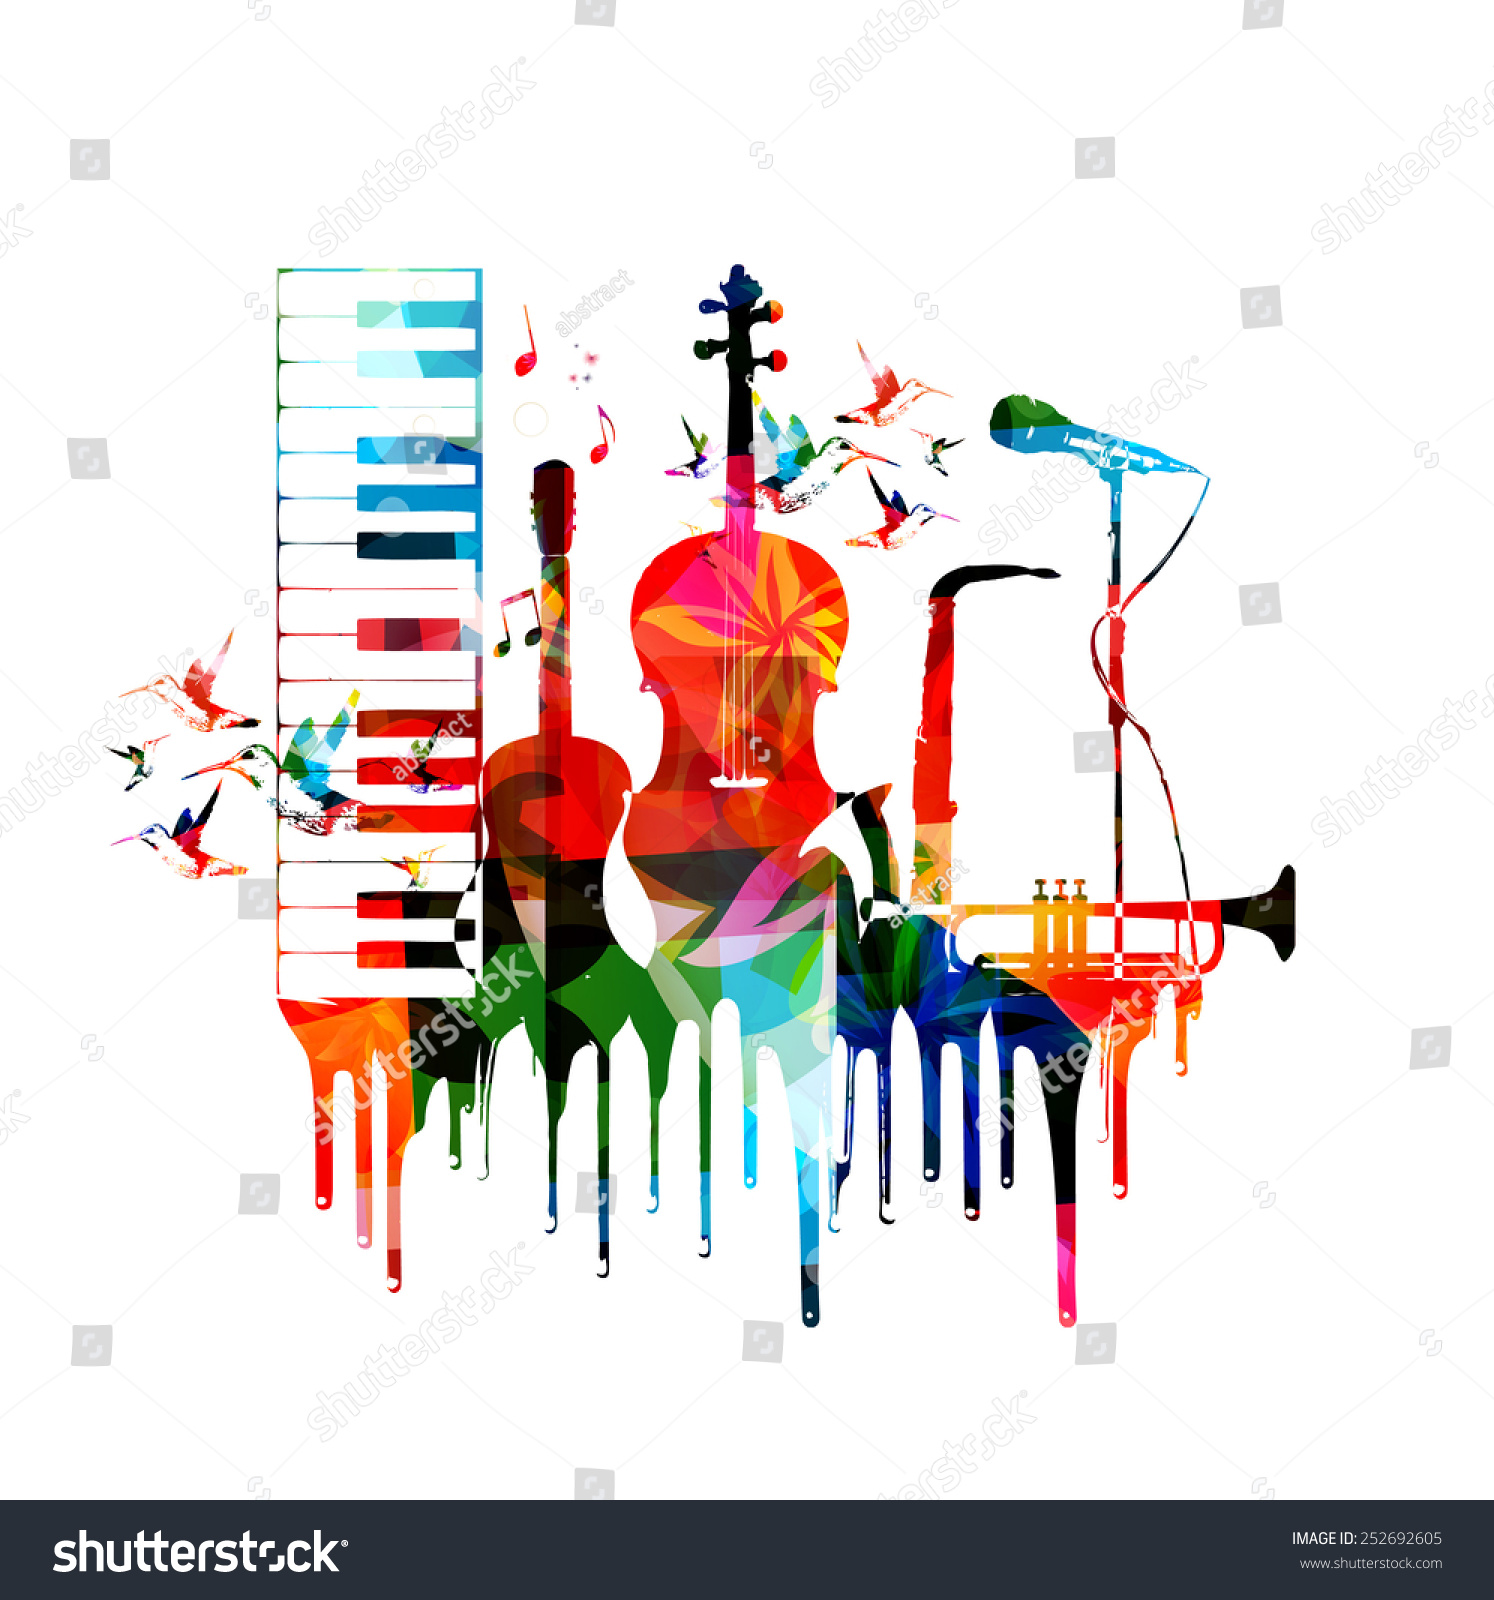 Colorful Musical Instruments Design Stock Vector 252692605 ... Classical Music Background Designs